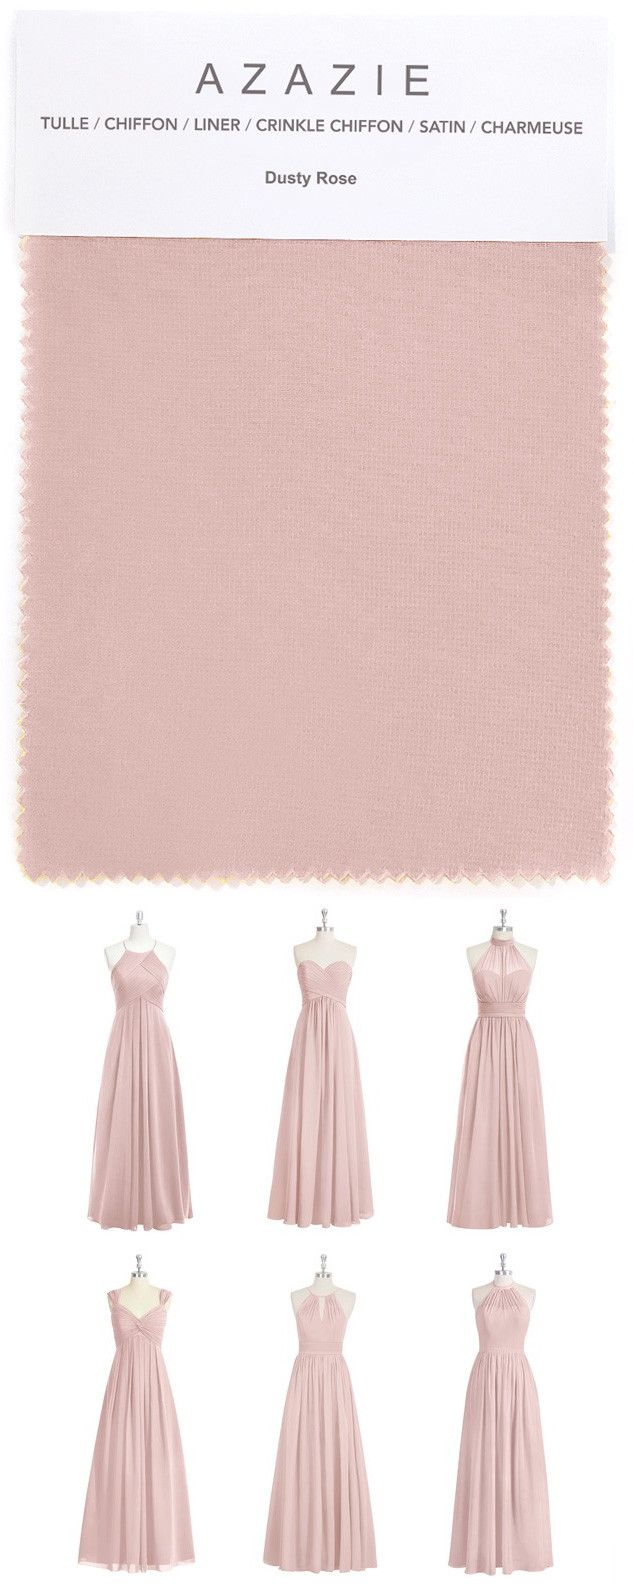 Best 25 rose bridesmaid dresses ideas on pinterest dusty rose azazie dusty rose swatch in 6 fabrics pink dusty rose chiffon ombrellifo Images